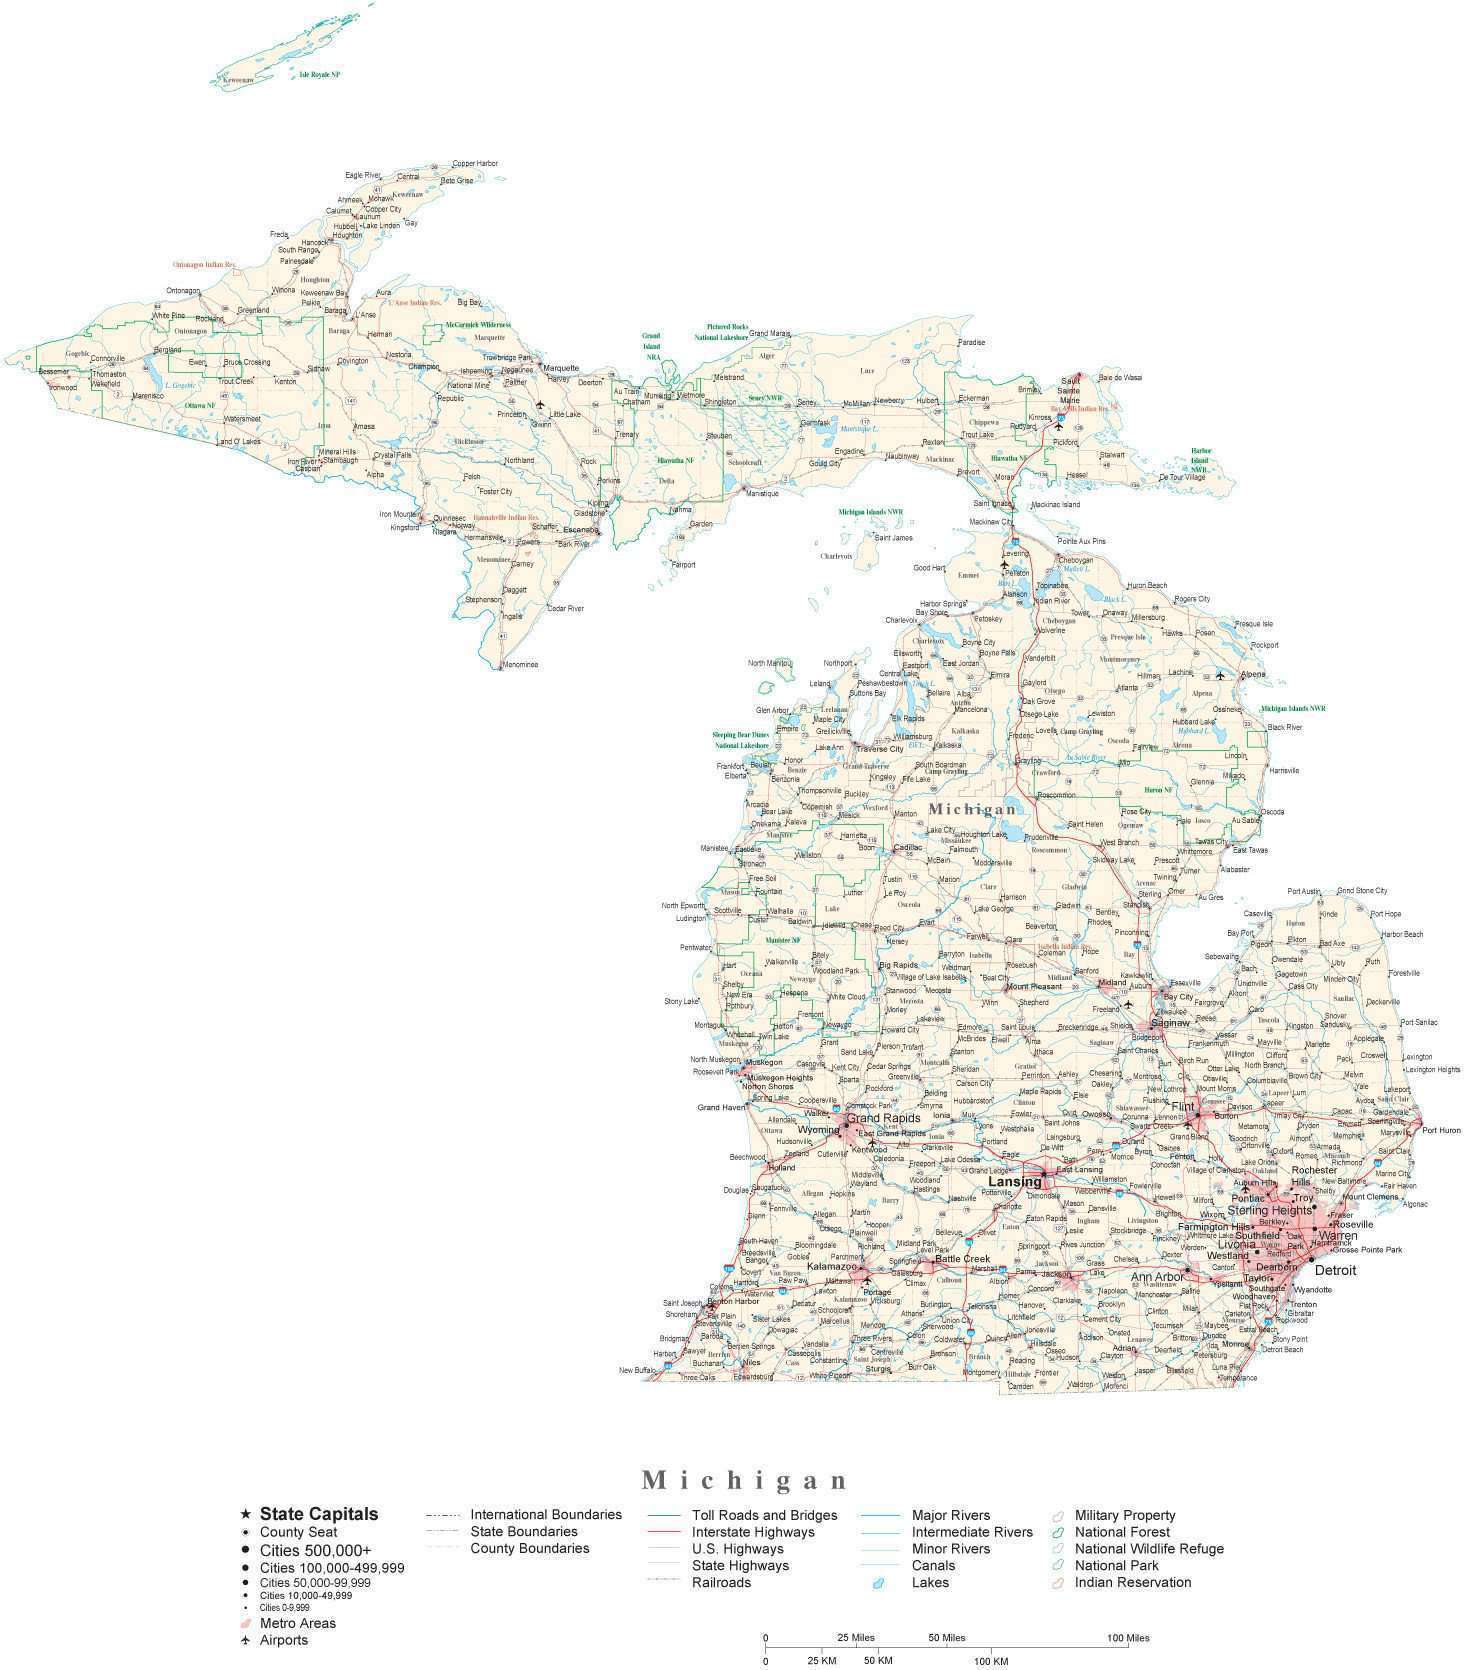 Michigan Map With Counties And Cities.Detailed Michigan Cut Out Style Digital Map With County Boundaries Cities Highways National Parks And More